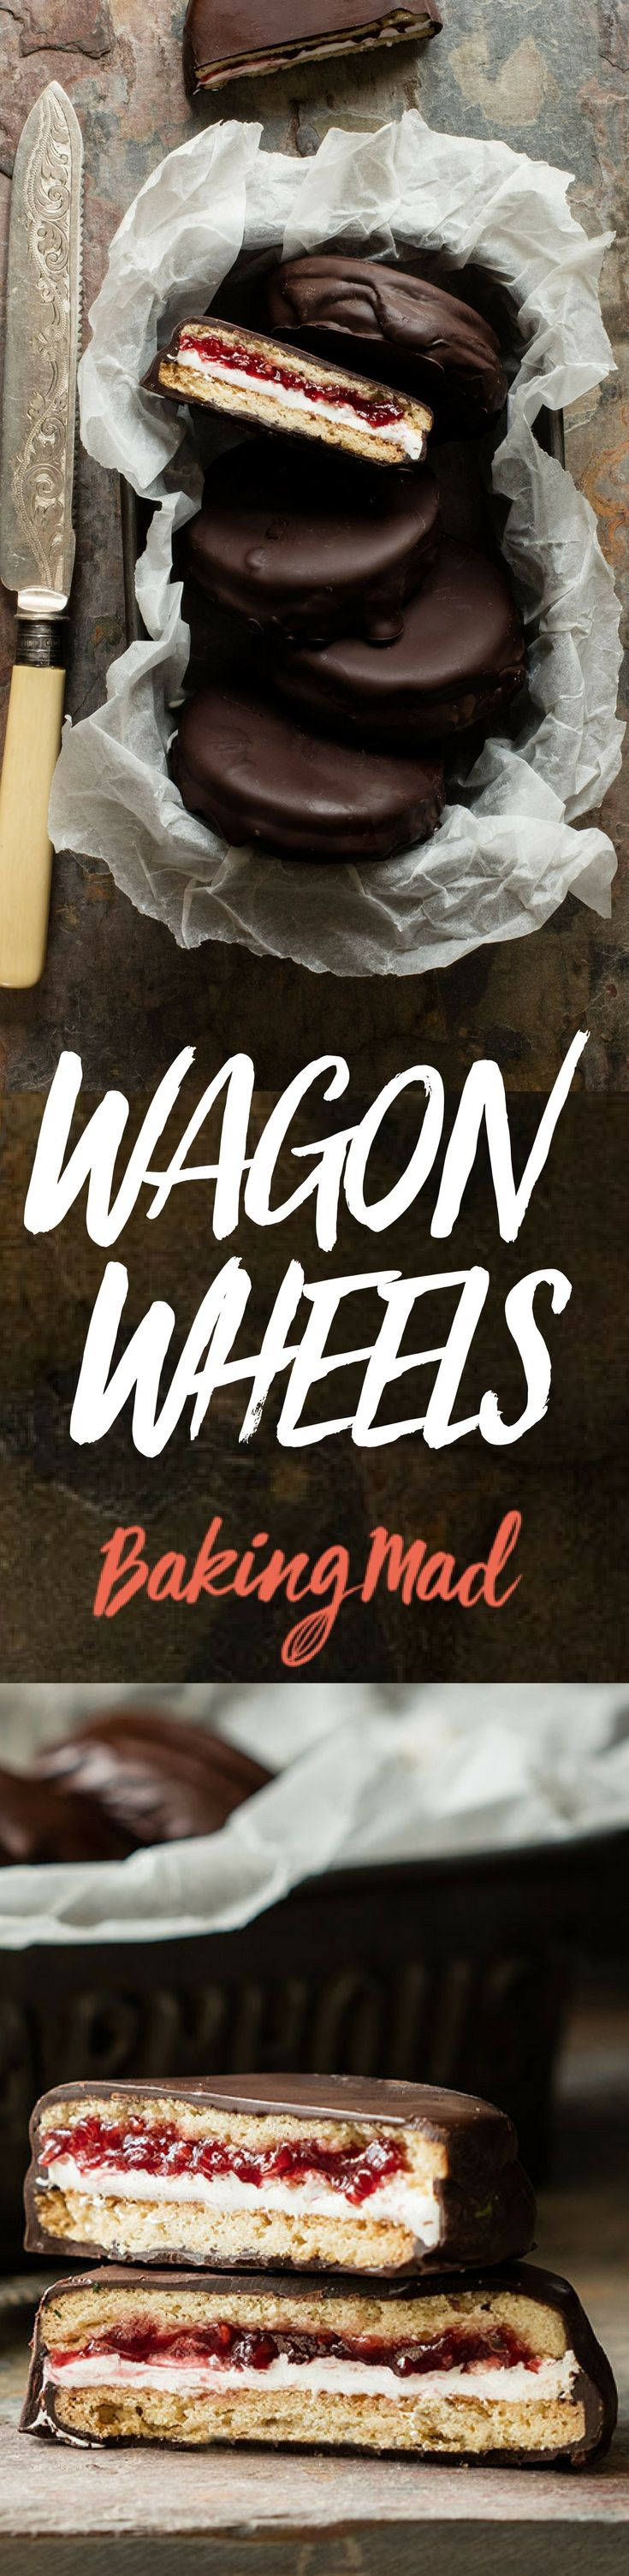 This recipe is for homemade wagon wheels. Take us back to our youth! #biscuits